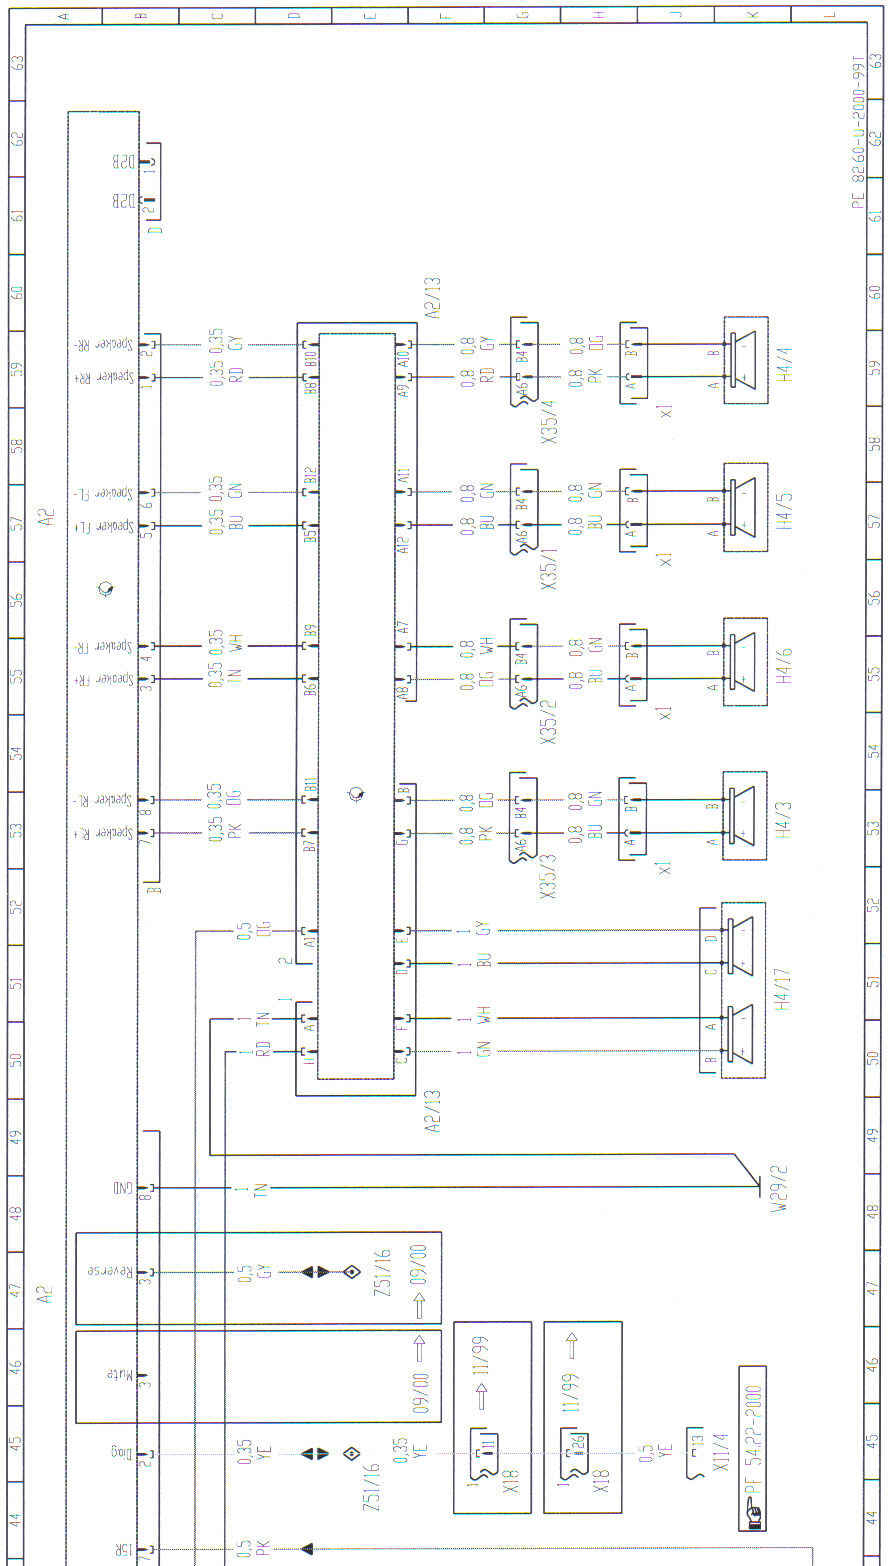 2003 mercedes ml350 radio wiring diagram 2003 mercedes c230 stereo wiring diagram